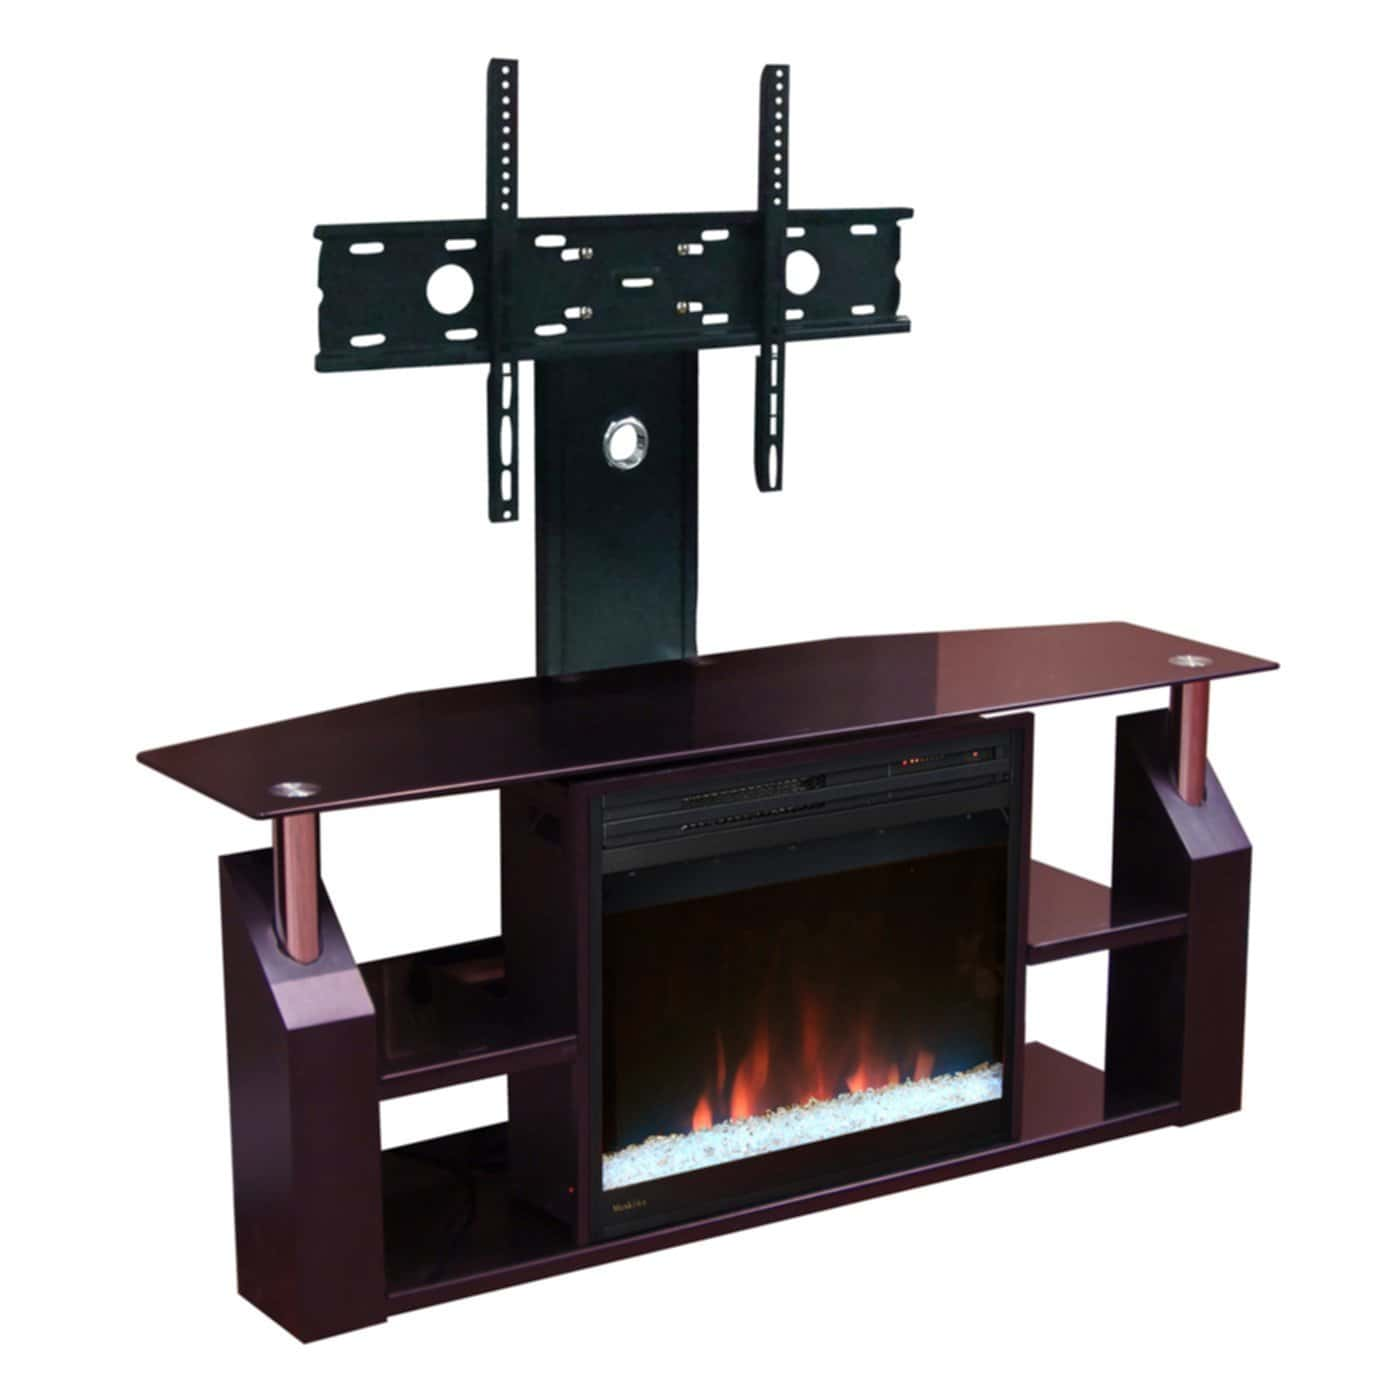 Fireplace Tv Stand With Ipod Dock